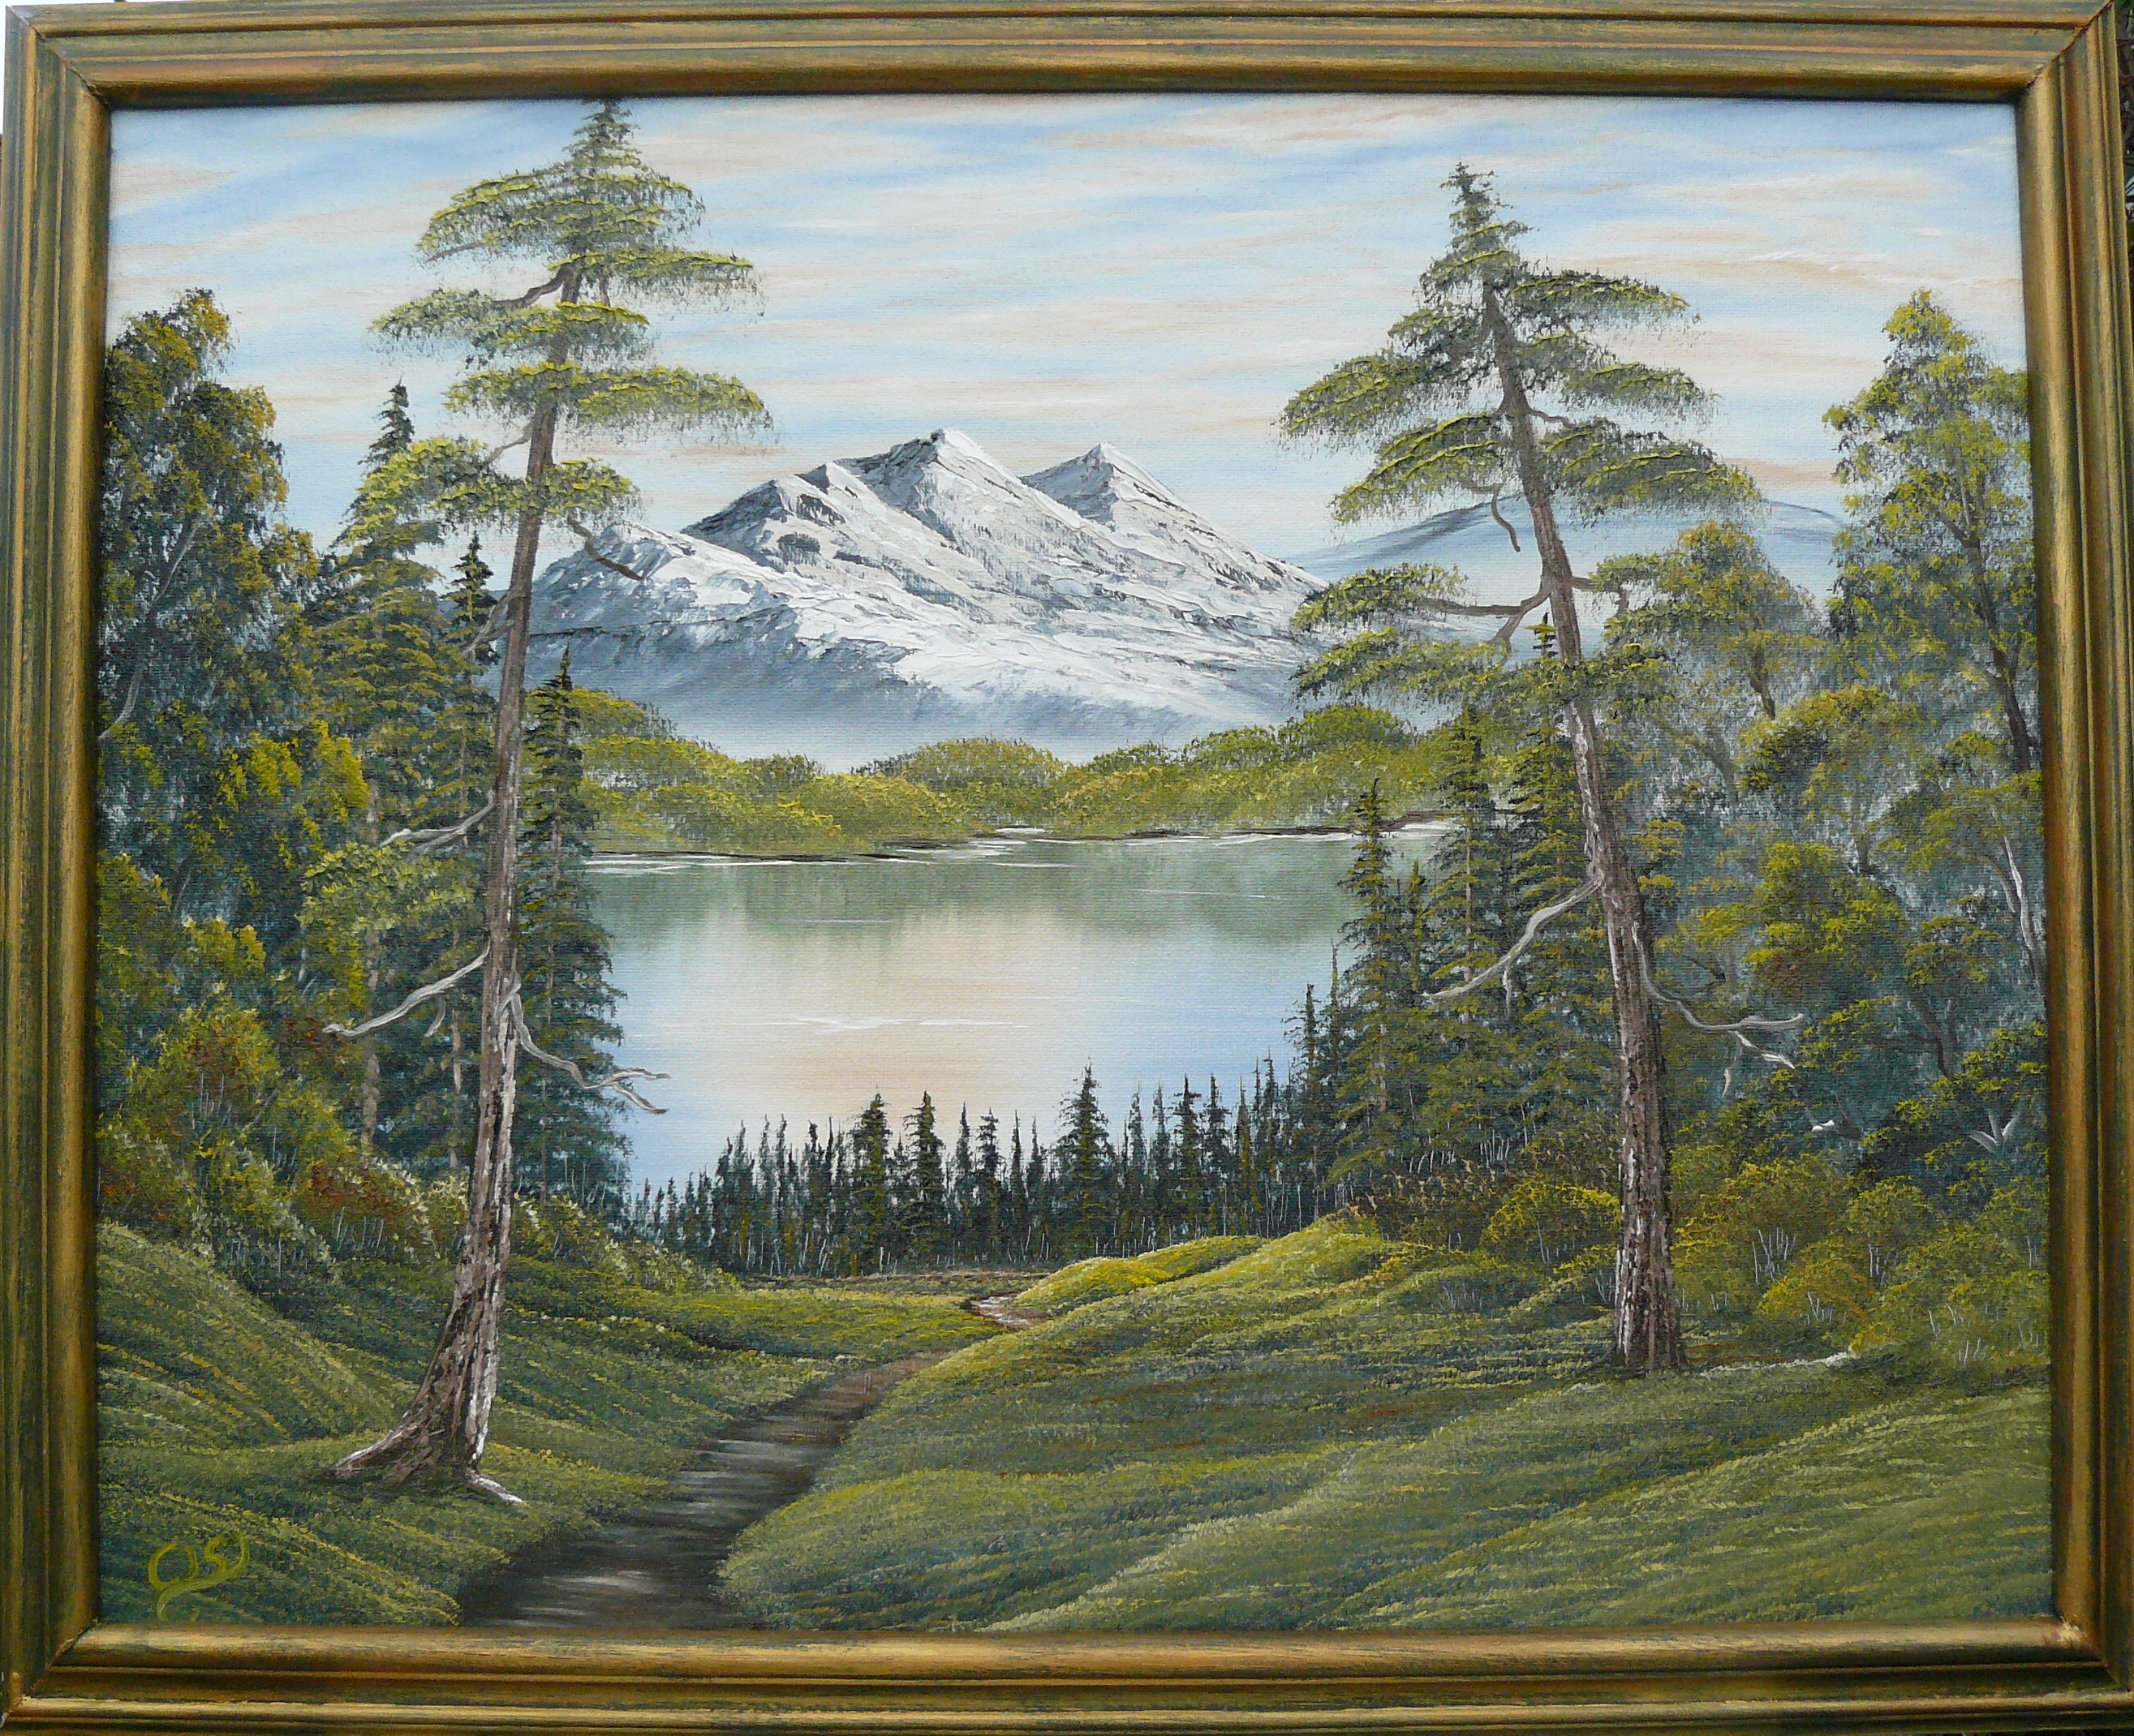 """Lonely Lake by the mountain"". 2012. Olja på duk, 40x50 cm."